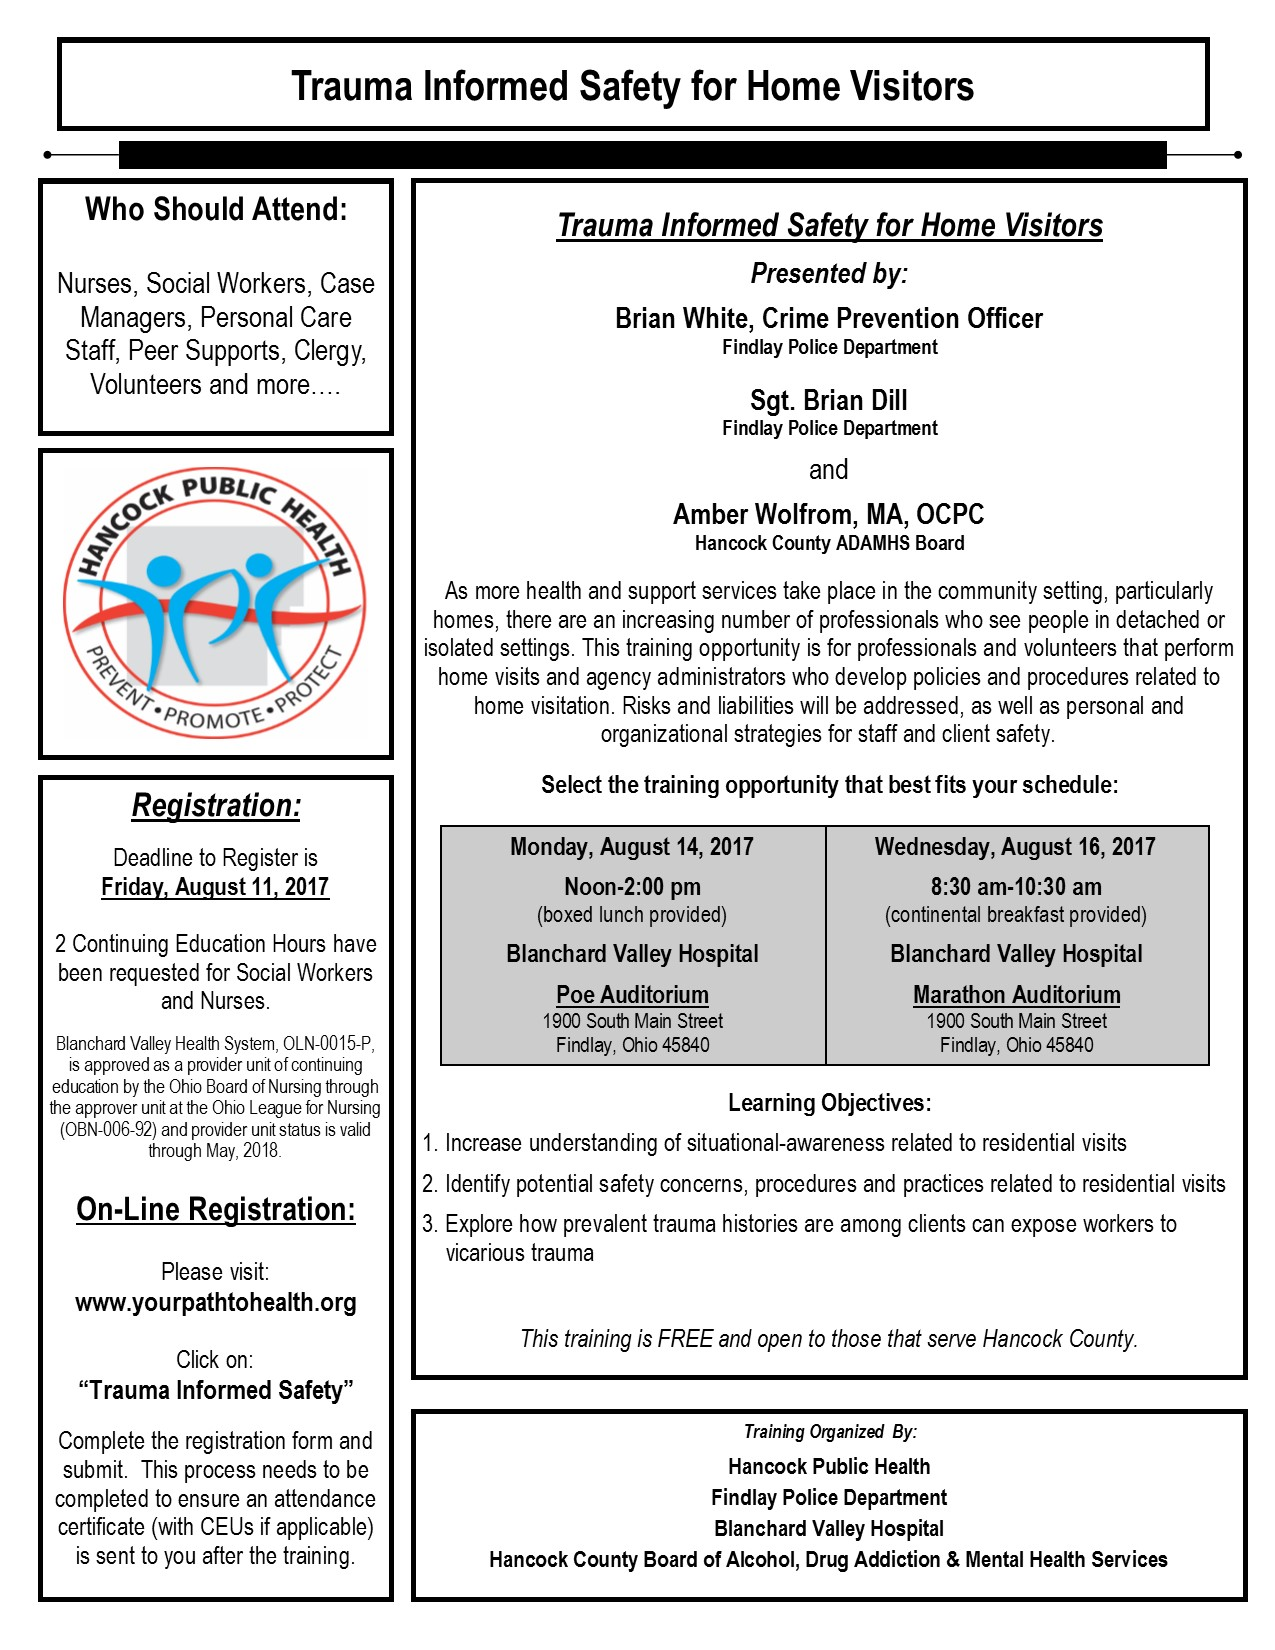 Trauma Informed Safety Hancock County Board Of Alcohol Drug